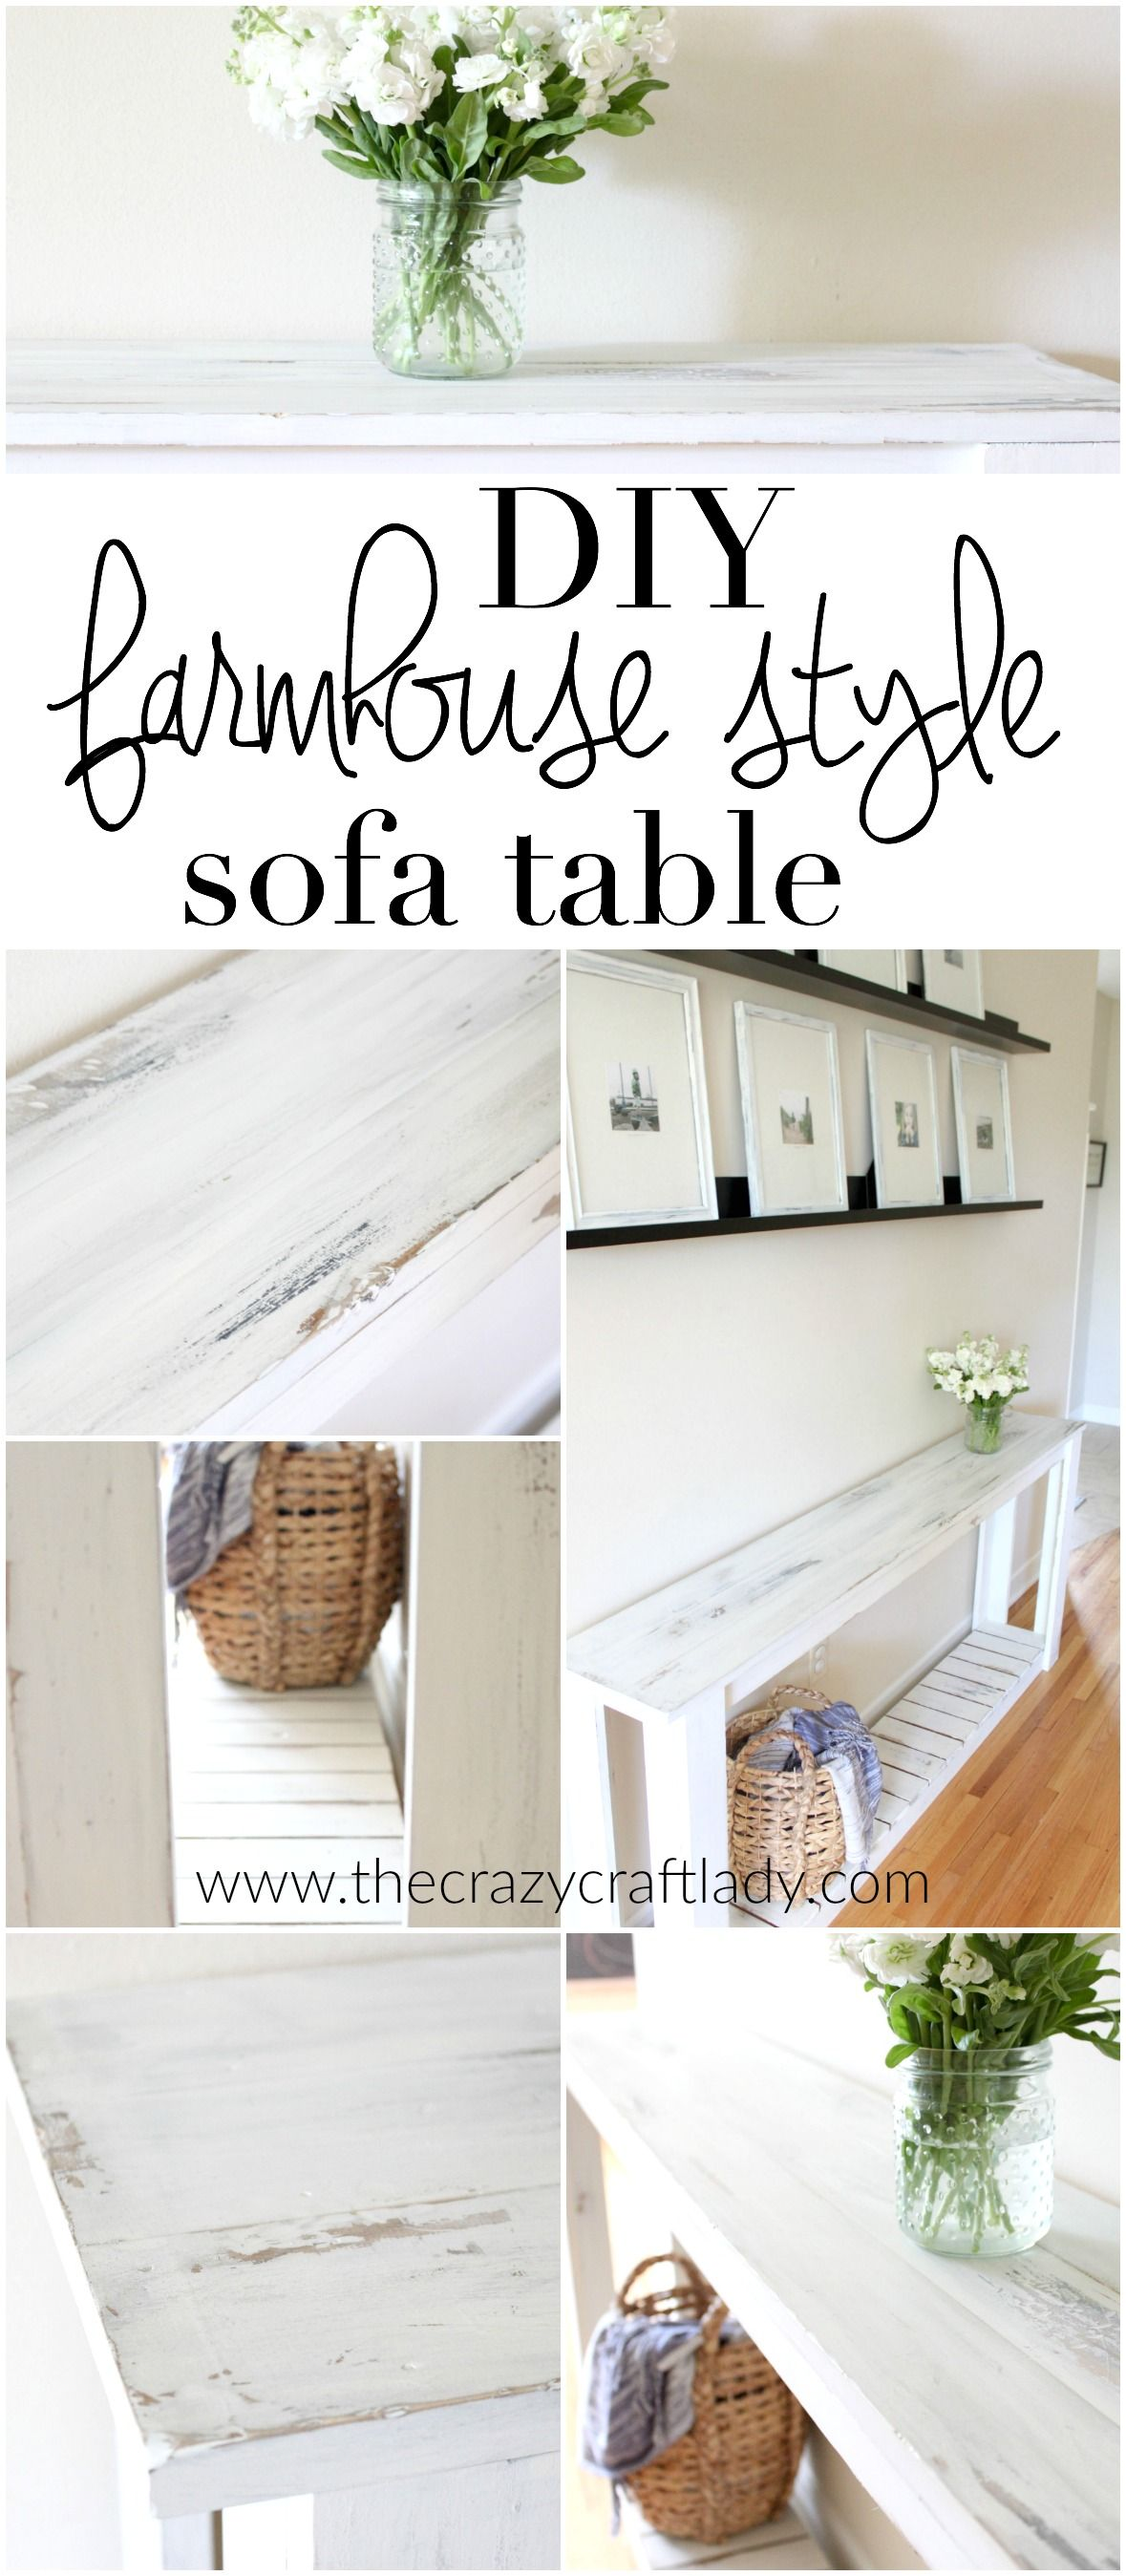 Diy Sofa Table Farmhouse Style Diy Sofa Table Diy Sofa